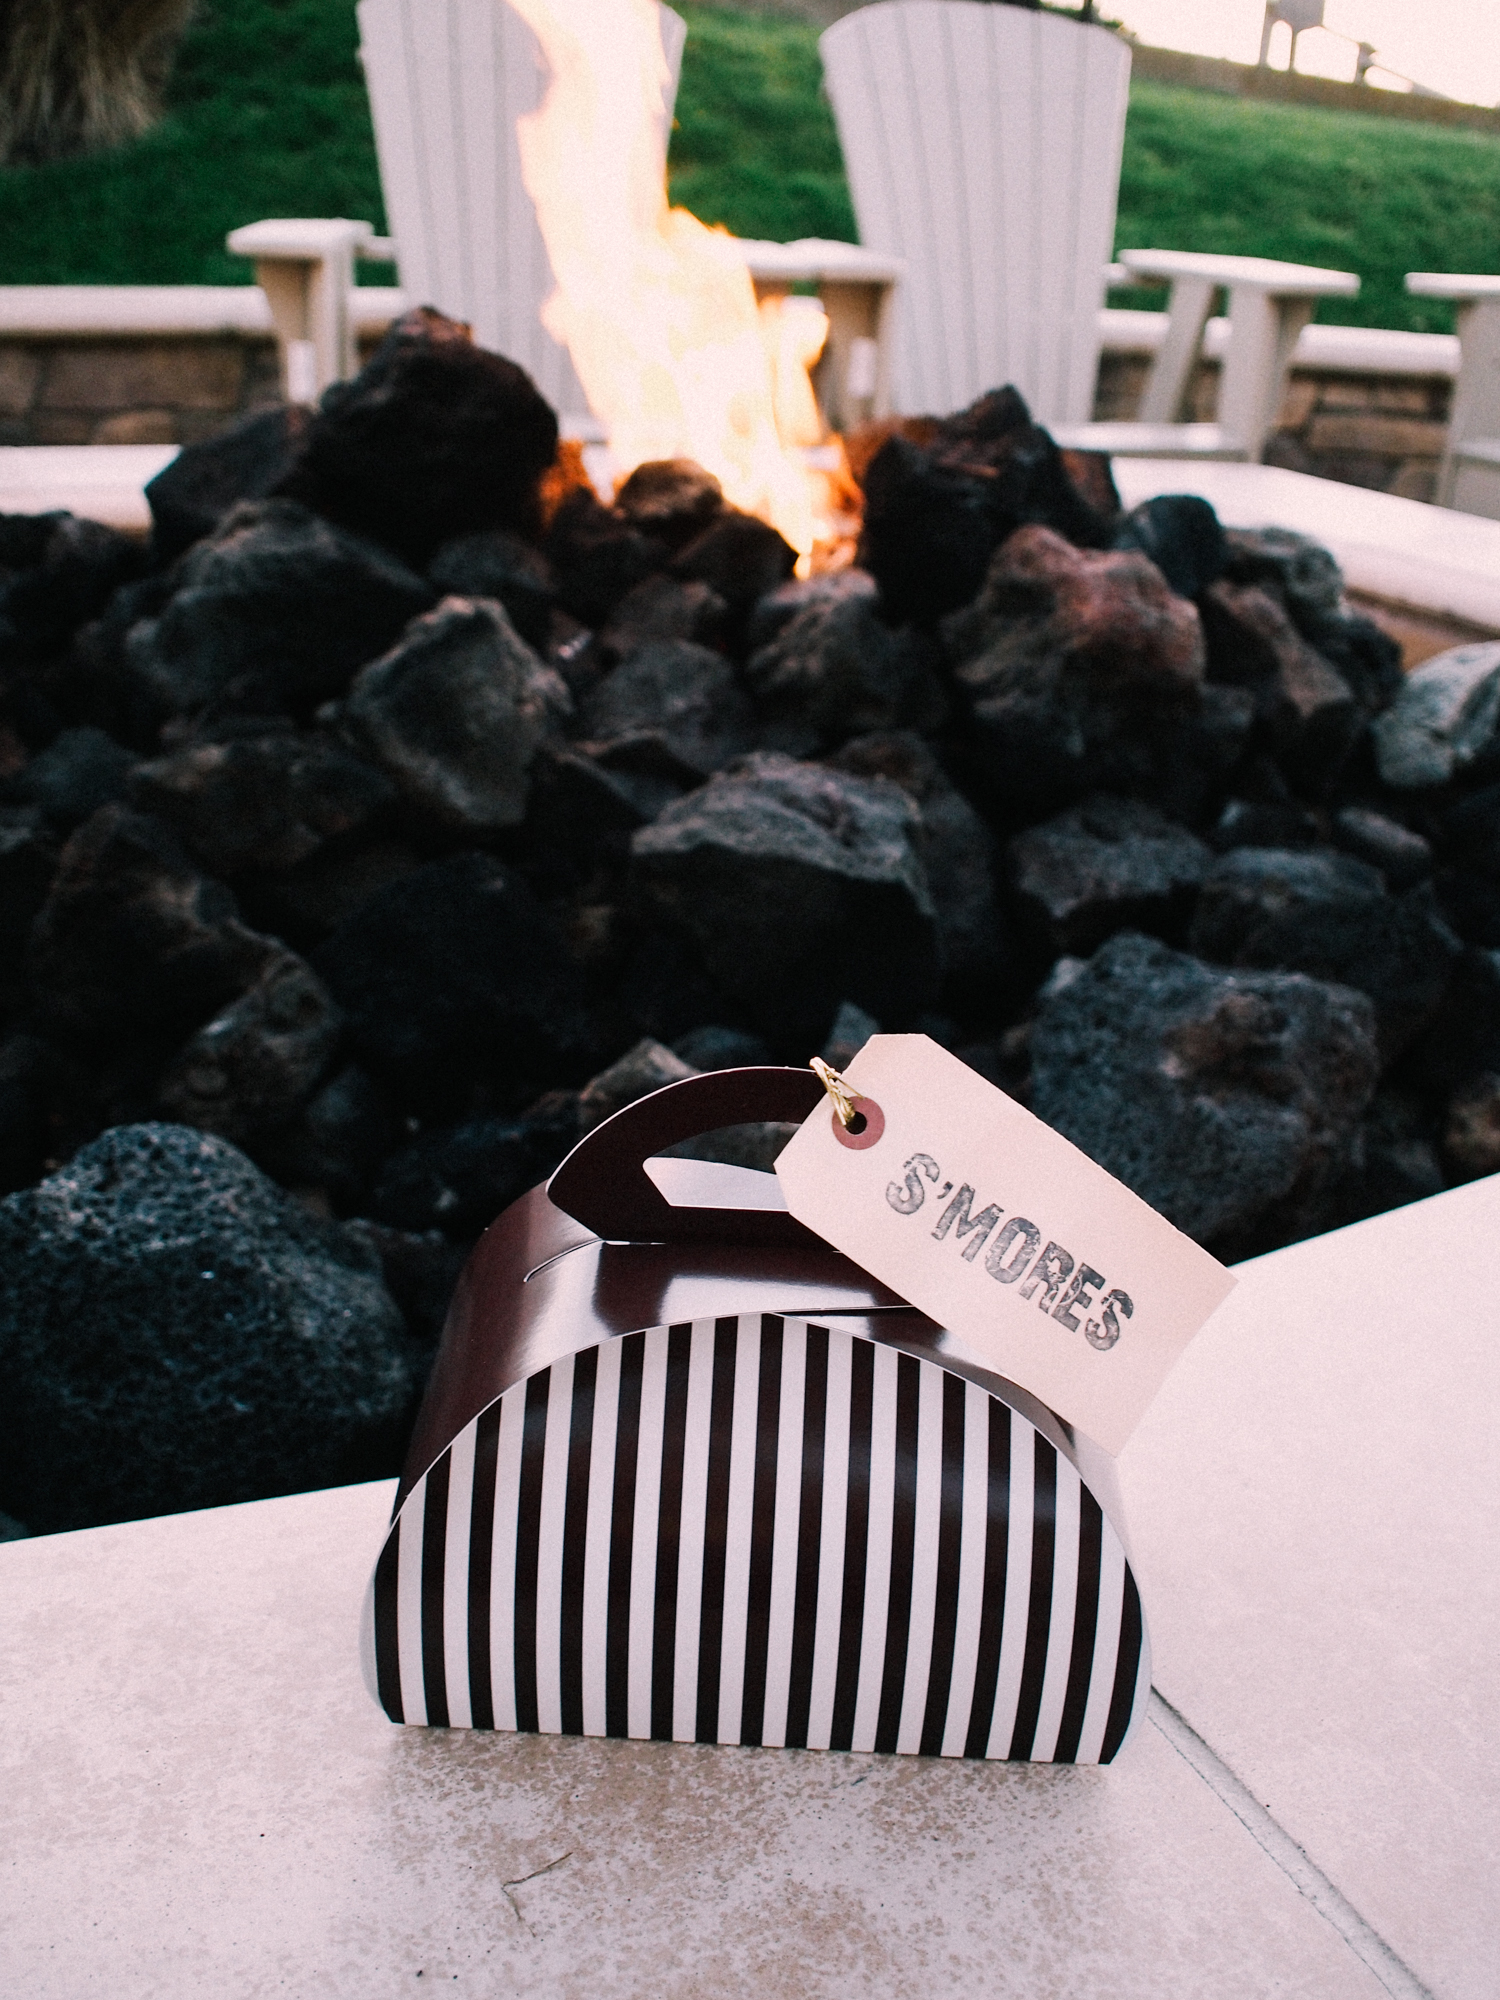 S'mores kits at The Ritz | A Fabulous Fete